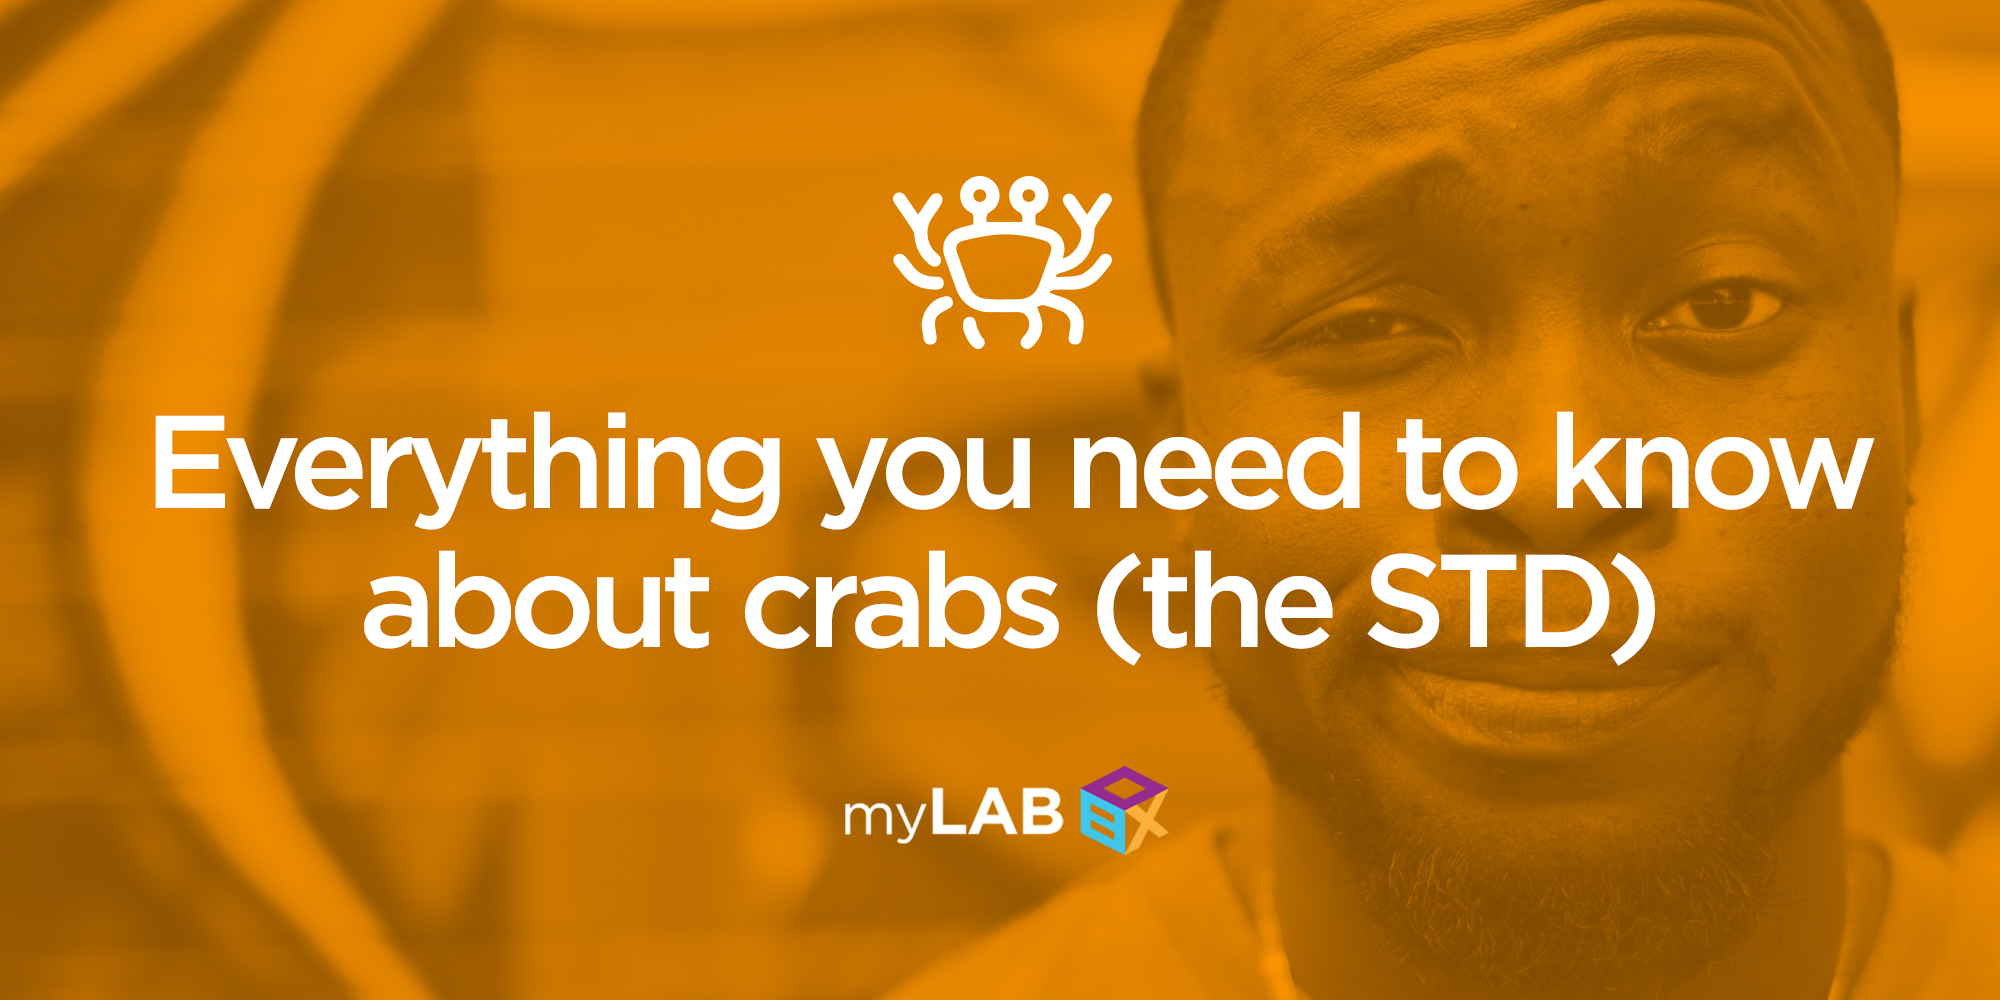 Everything you need to know about crabs (the STD)